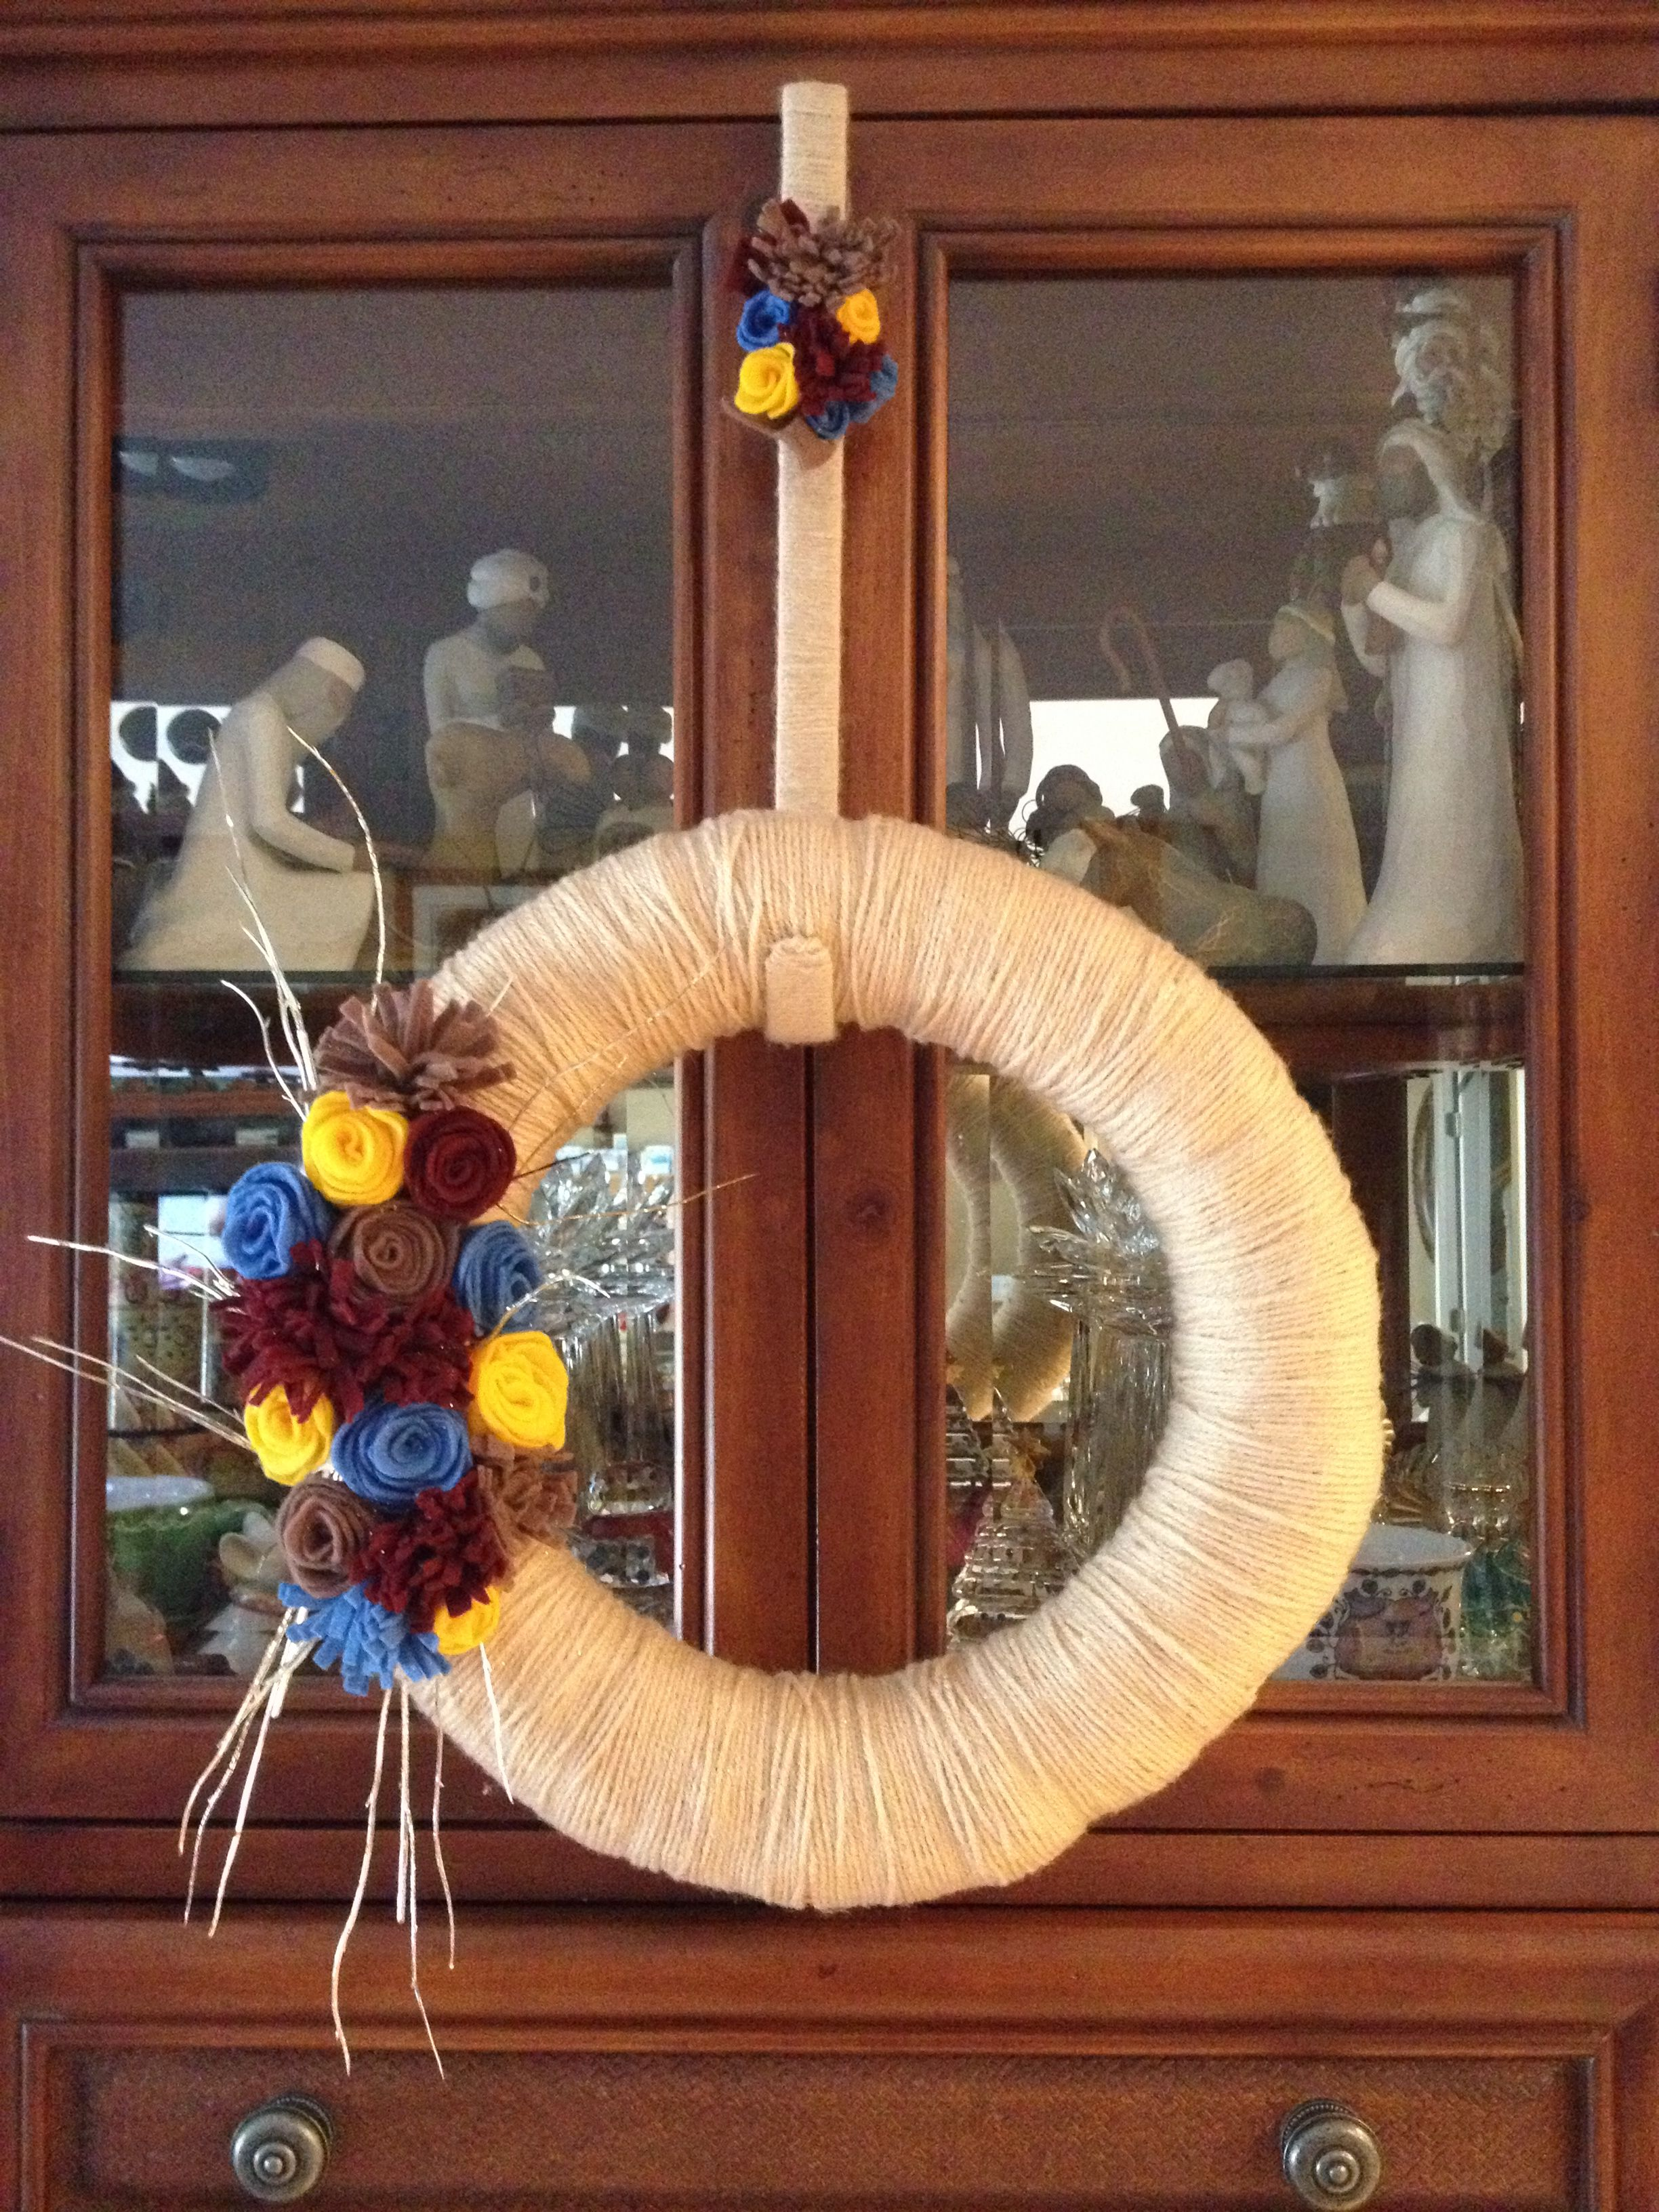 Diy yarn wreath with flowers made from felt with door